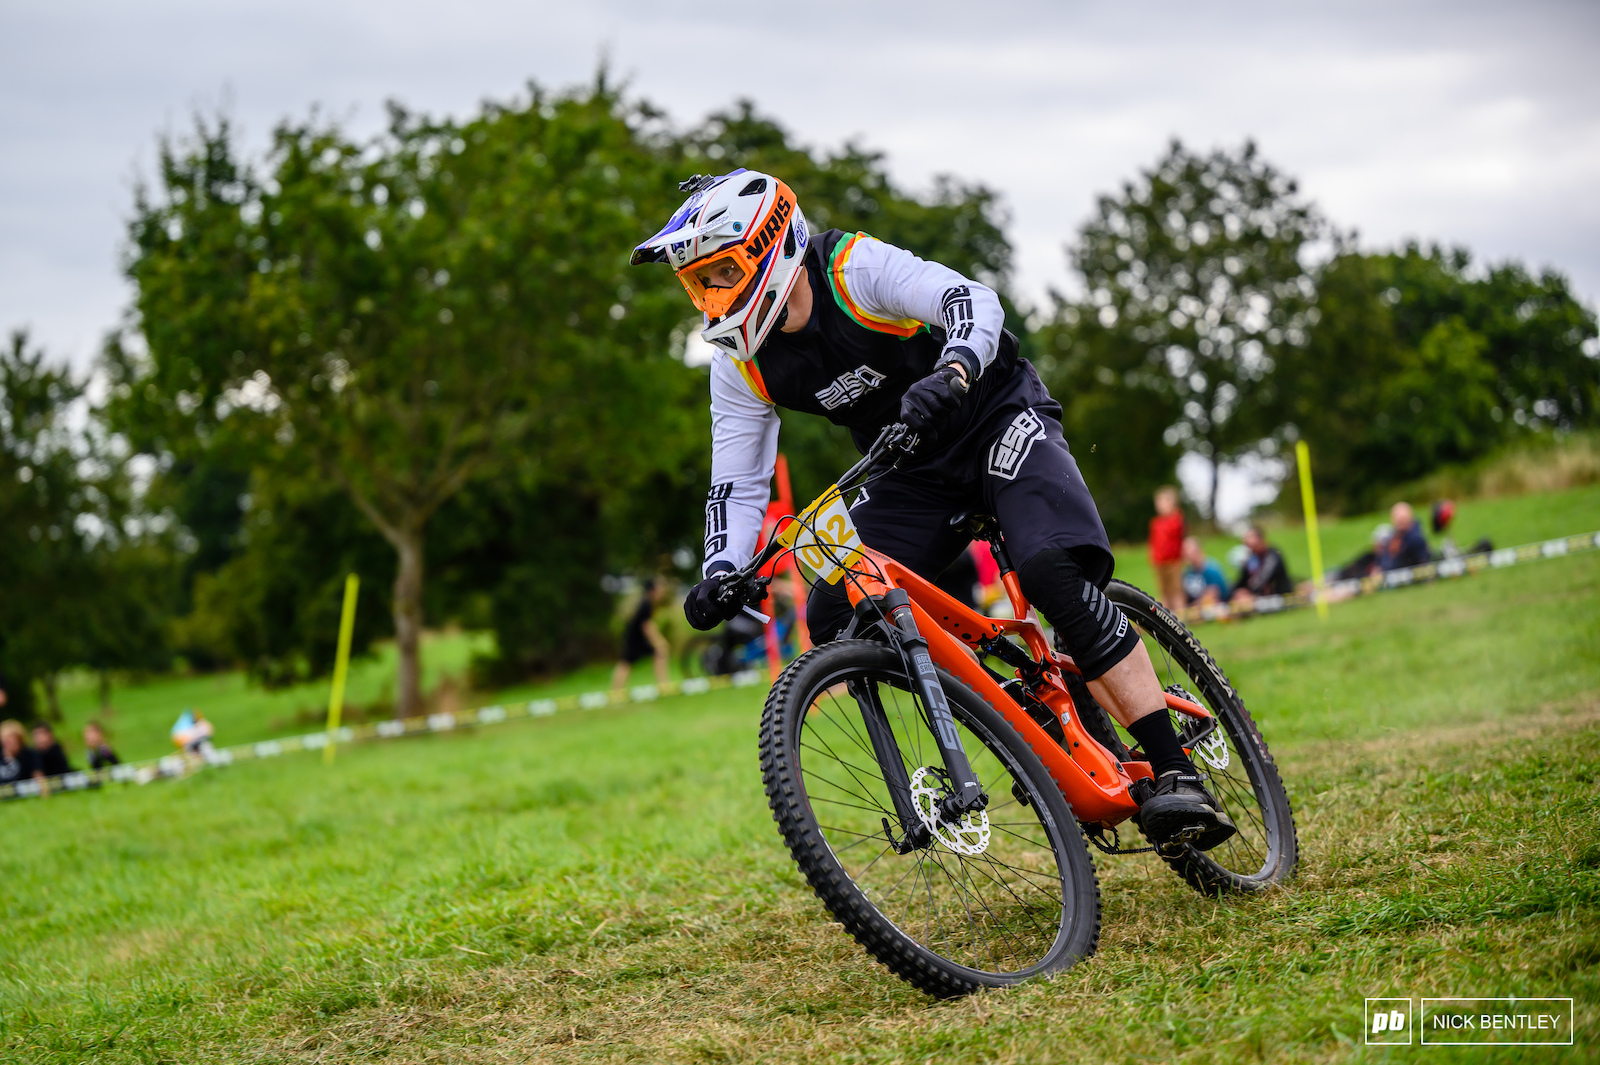 Aidan Bishop looking smooth coming in second